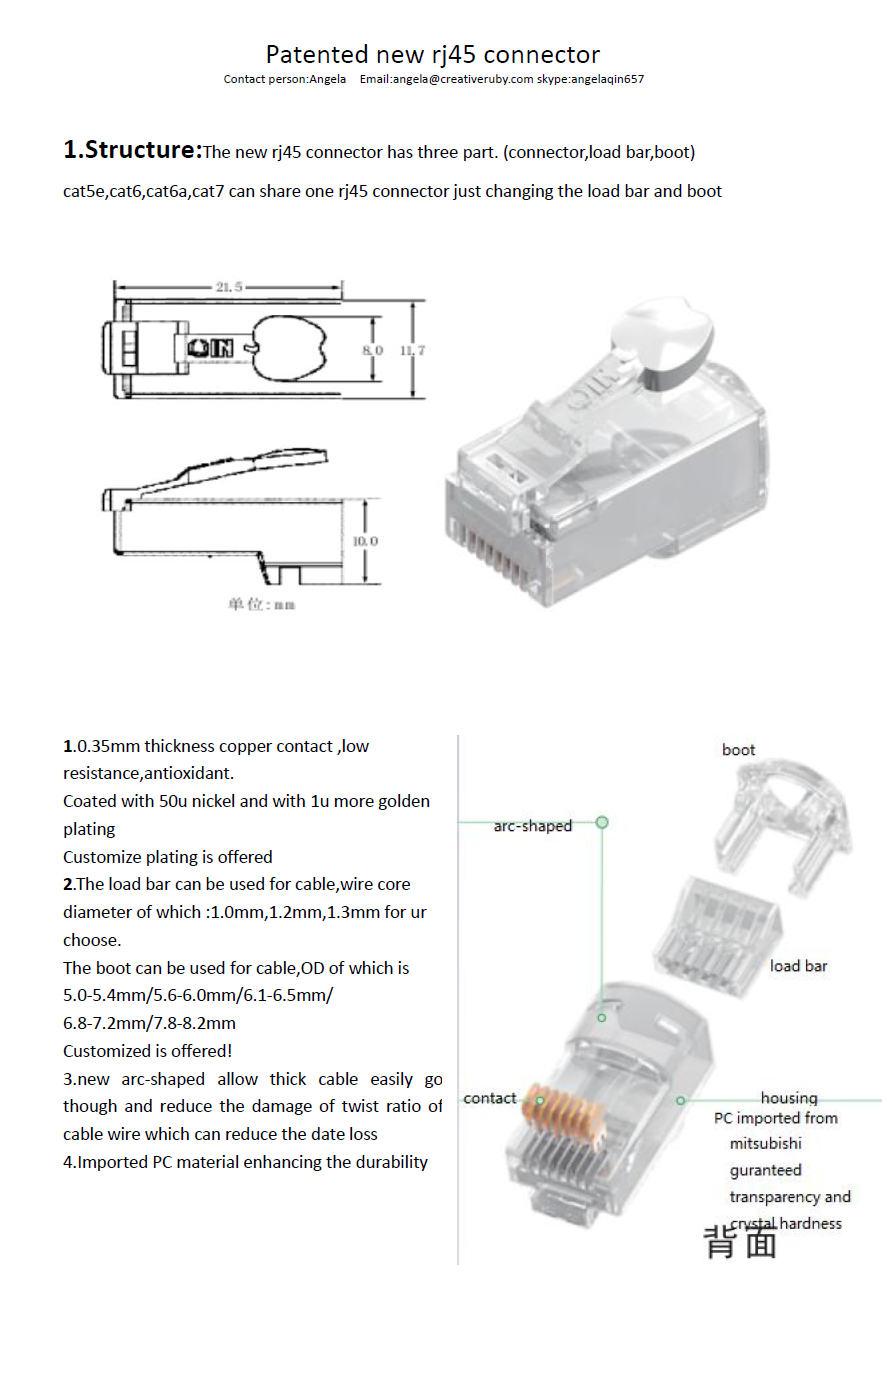 High Speed Wire Connector Cat5 Cat6 Cat7 Rj45 Jack Plug Wiring Diagram On Pc To Utp Our Services 1 Year Warranty 2 Return Policy Is Exchange Only Buyer Must Pay Shipping Fee For Item